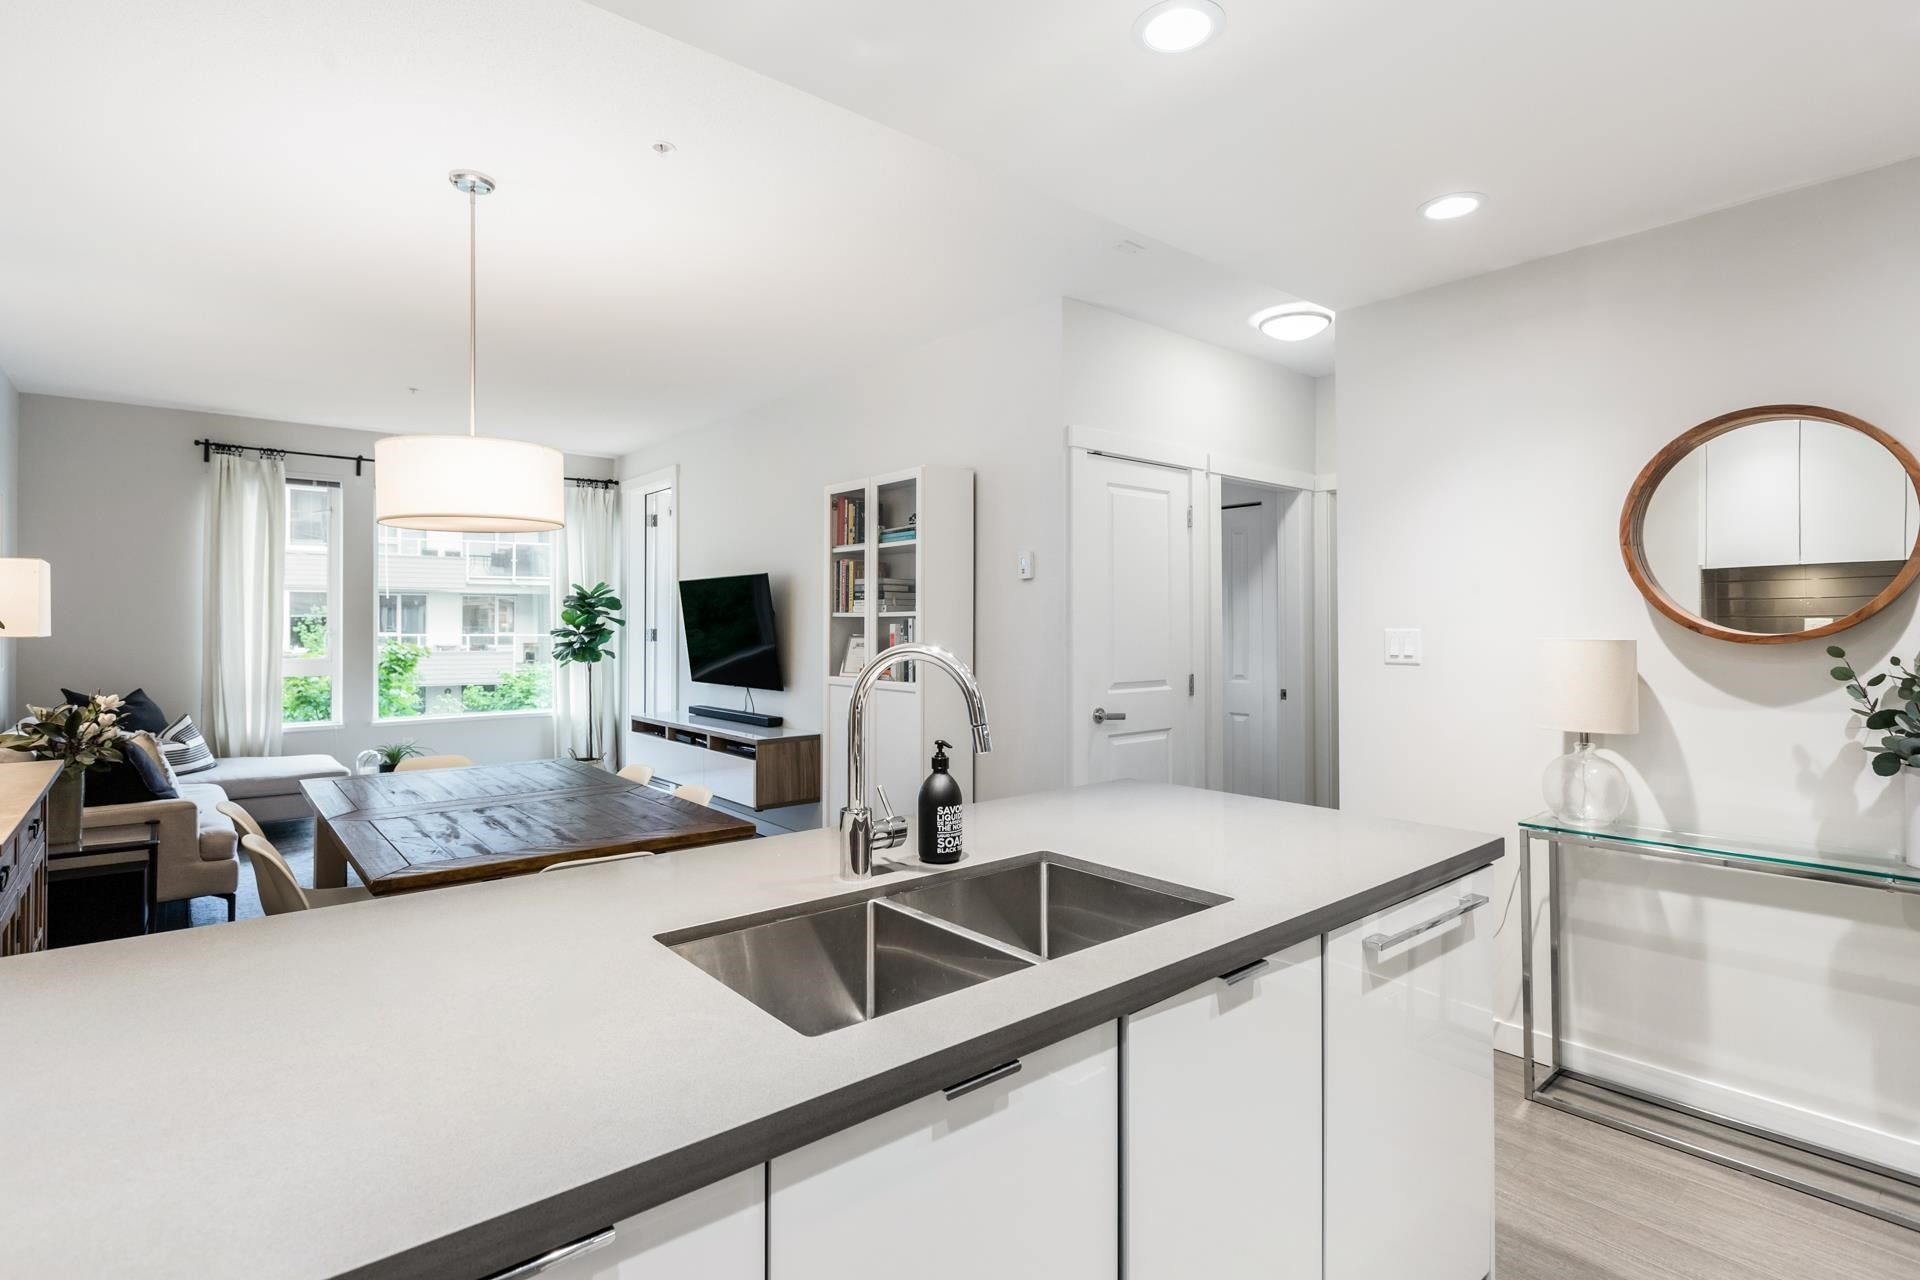 207 255 W 1ST STREET - Lower Lonsdale Apartment/Condo for sale, 2 Bedrooms (R2603882) - #10